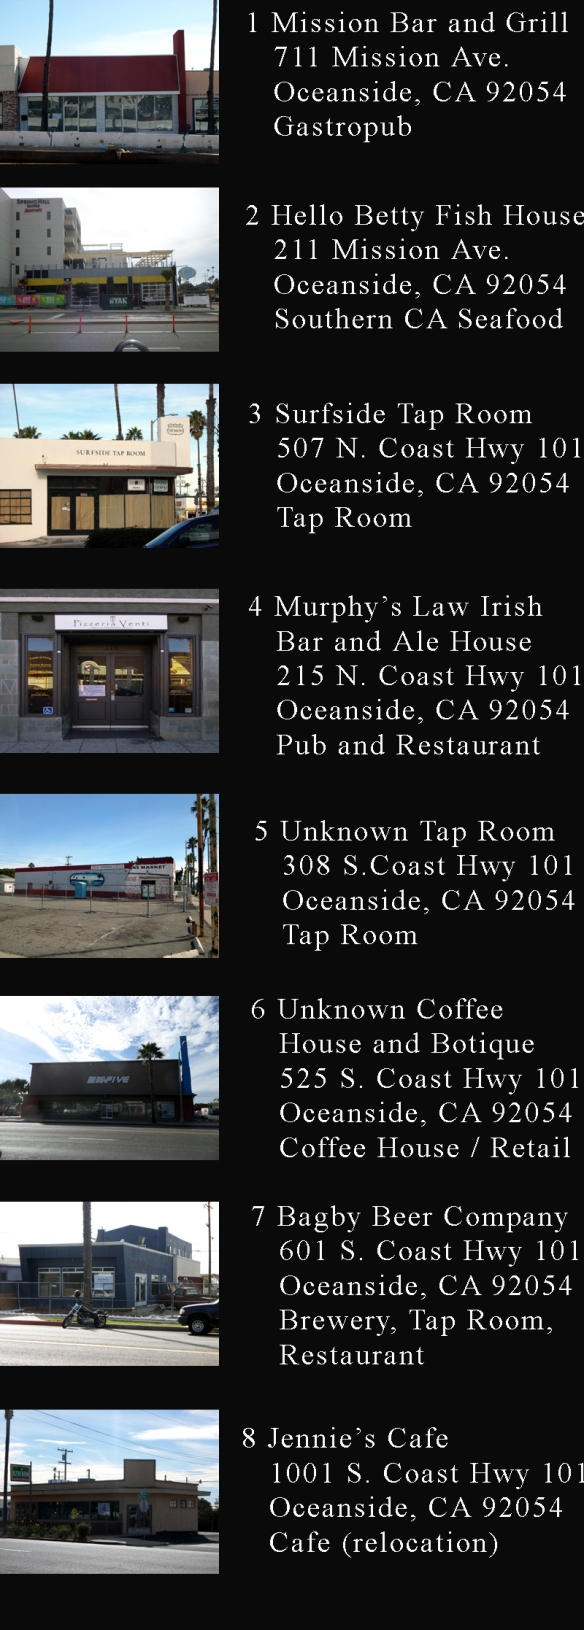 2014 Oceanside Restaurant Openings